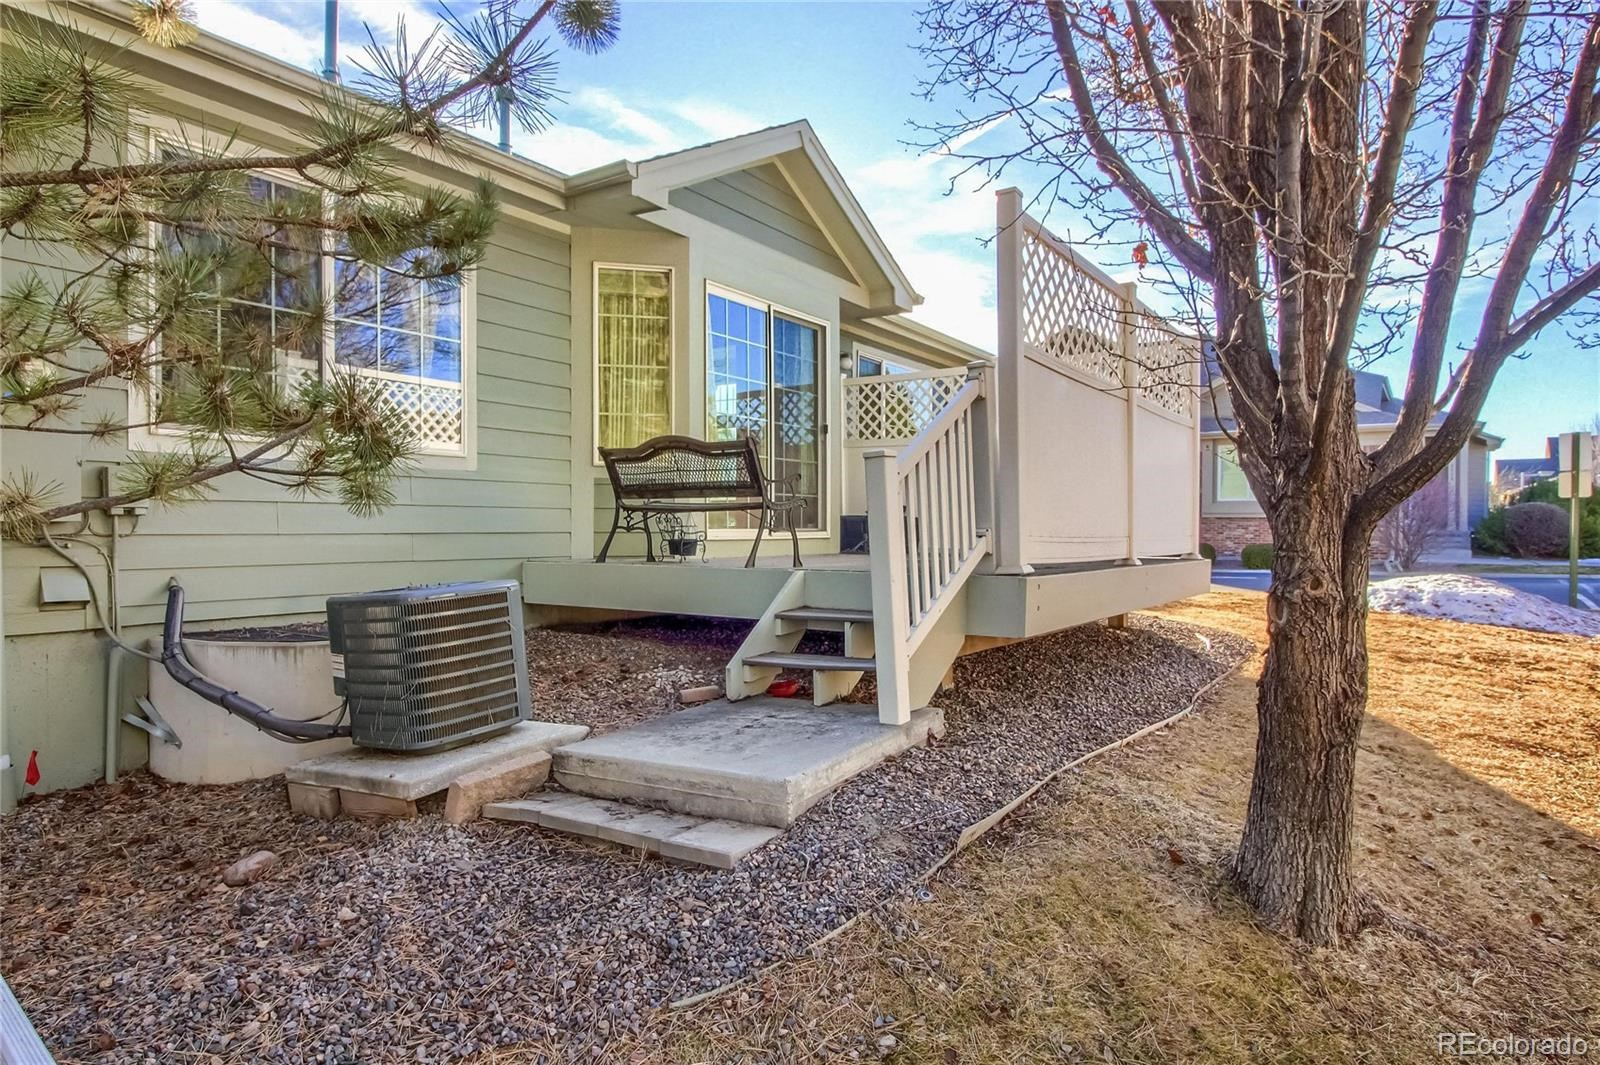 MLS# 8257624 - 38 - 12603 Knox Point, Broomfield, CO 80020